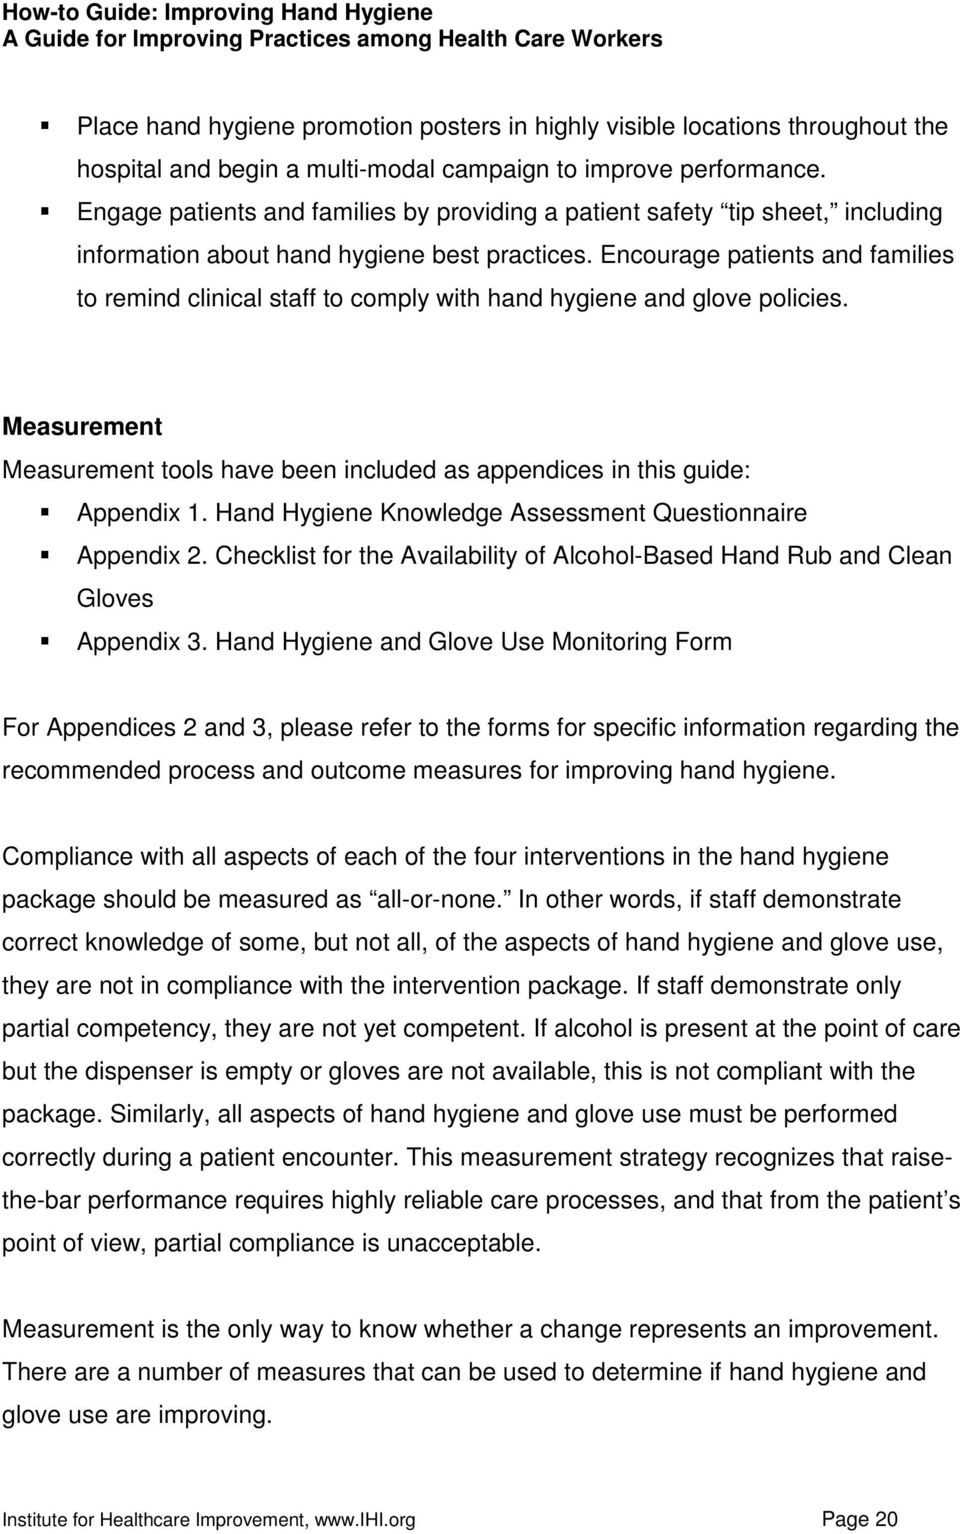 Encourage patients and families to remind clinical staff to comply with hand hygiene and glove policies. Measurement Measurement tools have been included as appendices in this guide: Appendix 1.